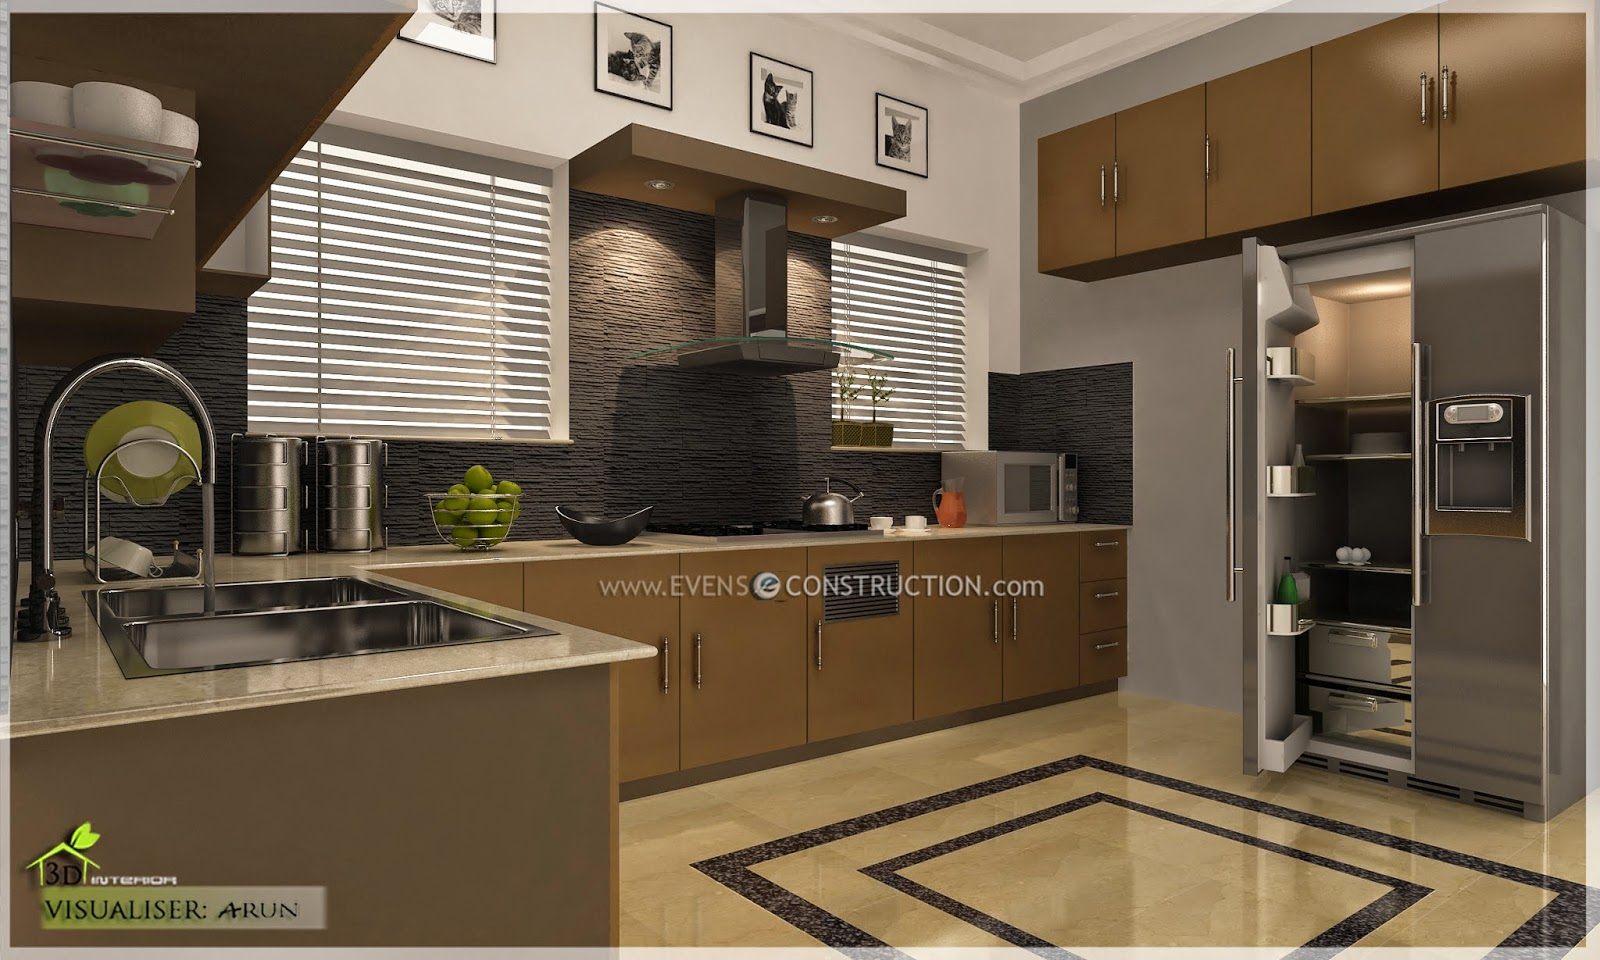 Evens construction pvt ltd may 2014 for New kitchen designs in kerala